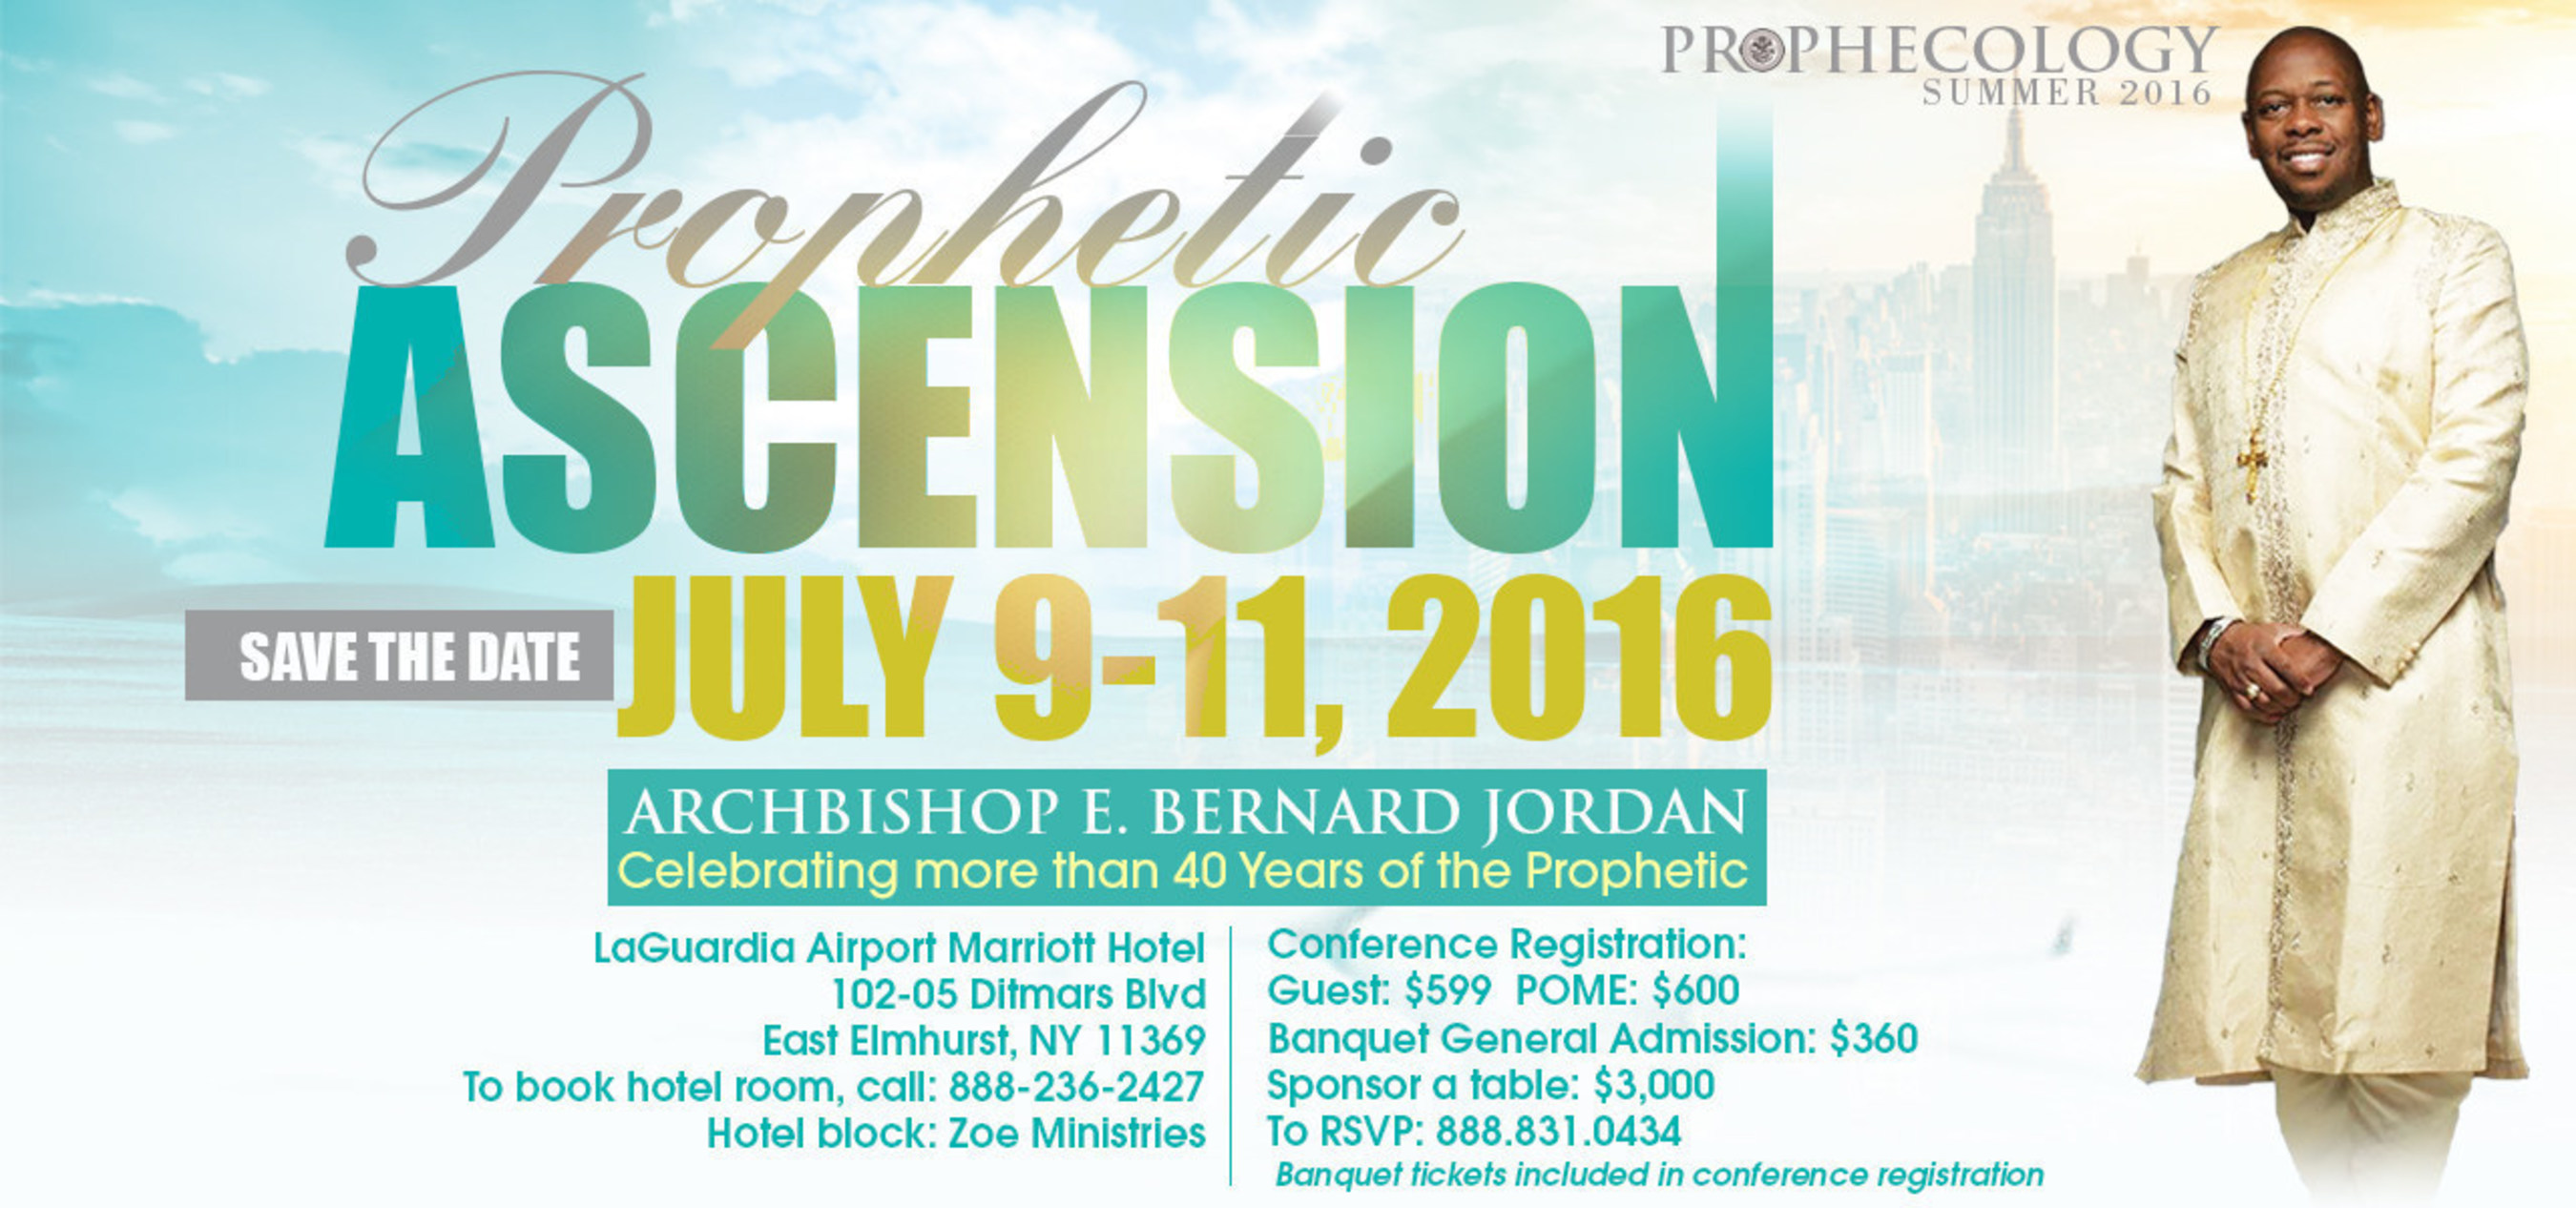 Prophecology Ascension 2016